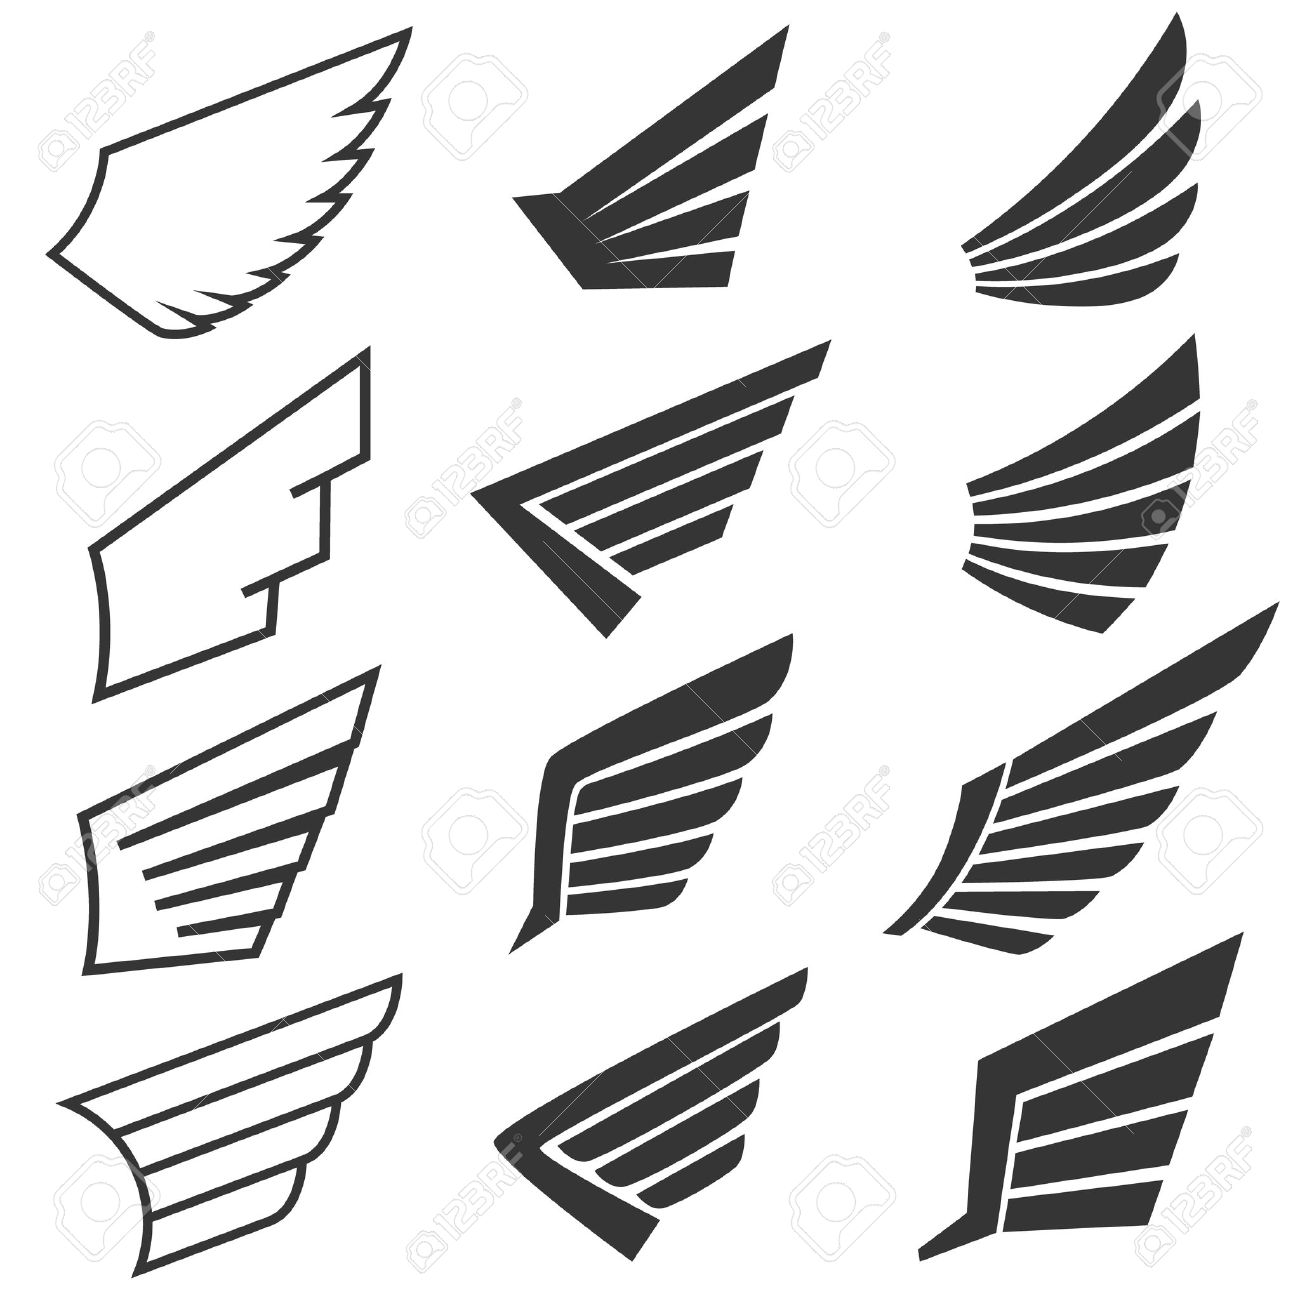 Wings set on white background. Heraldic wings. Element for logo,label and emblems design. Vector illustration. - 48136145